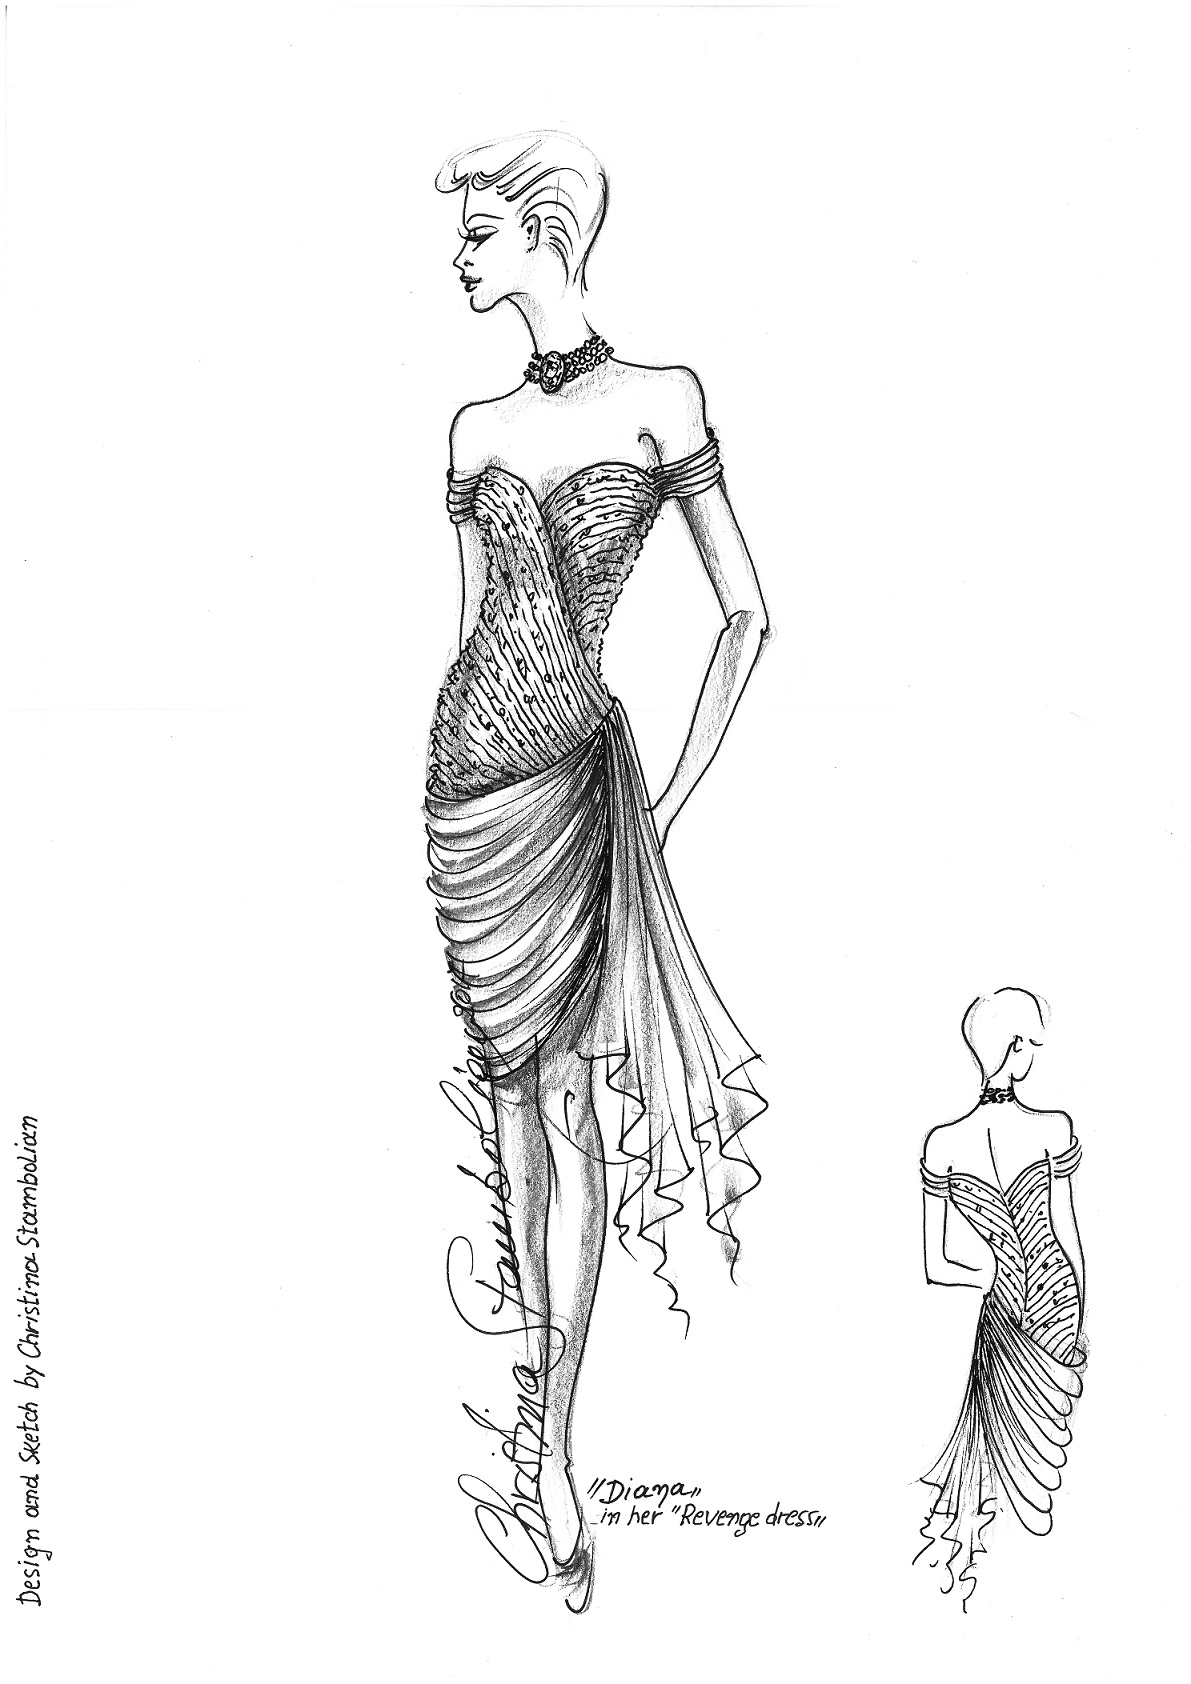 Christina Stambolian's sketch of Princess Diana's dress